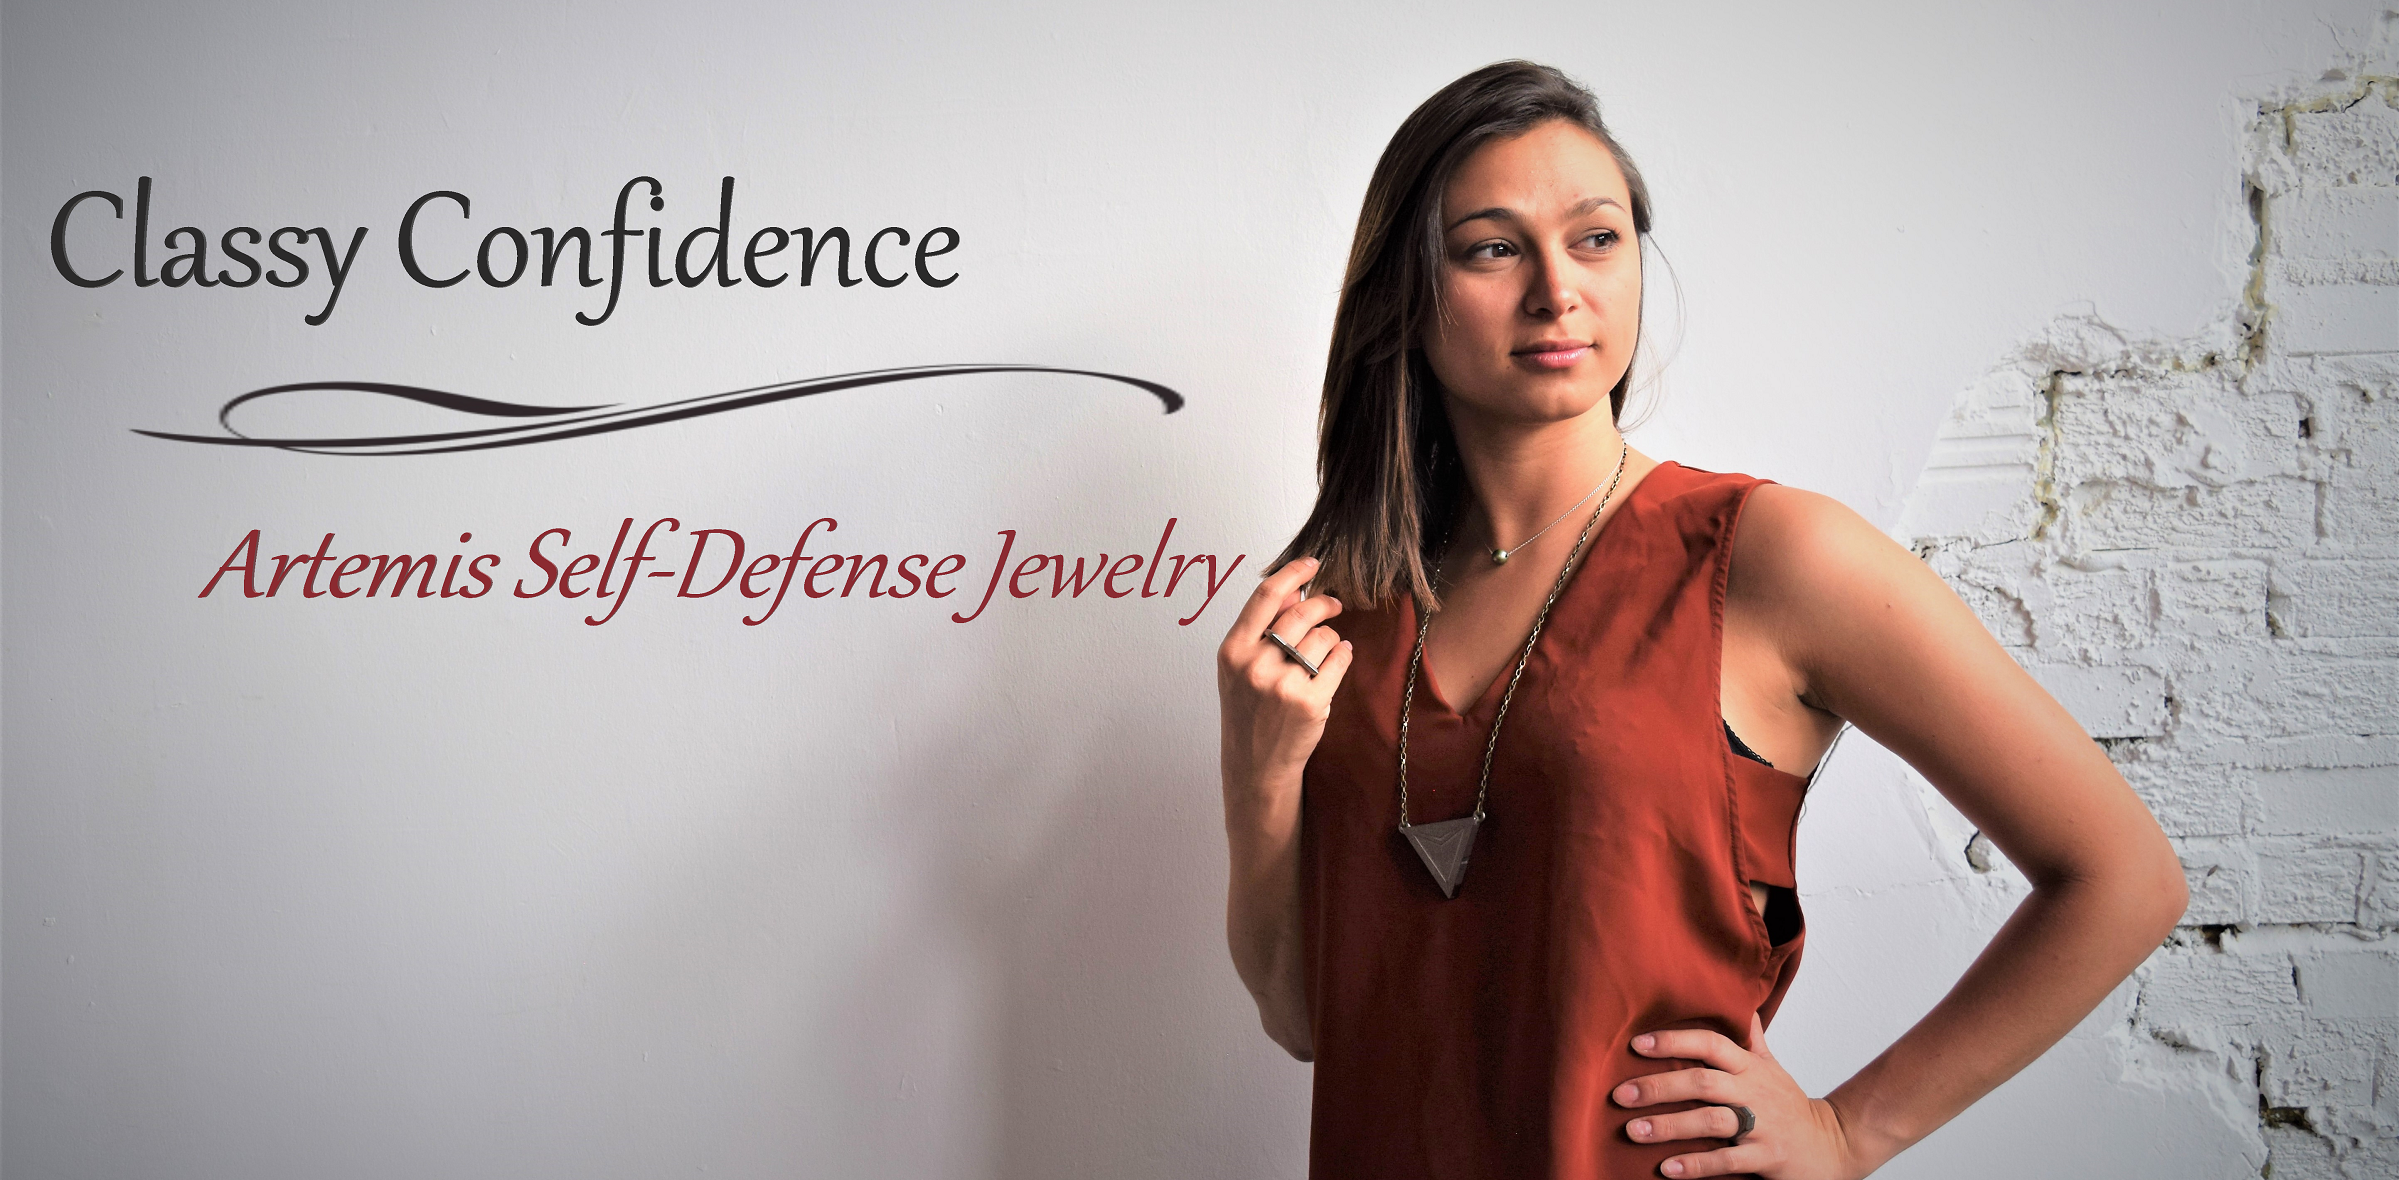 The Artemis Company looks to Empower Women with Jewelry that ... ca0c33d1a3